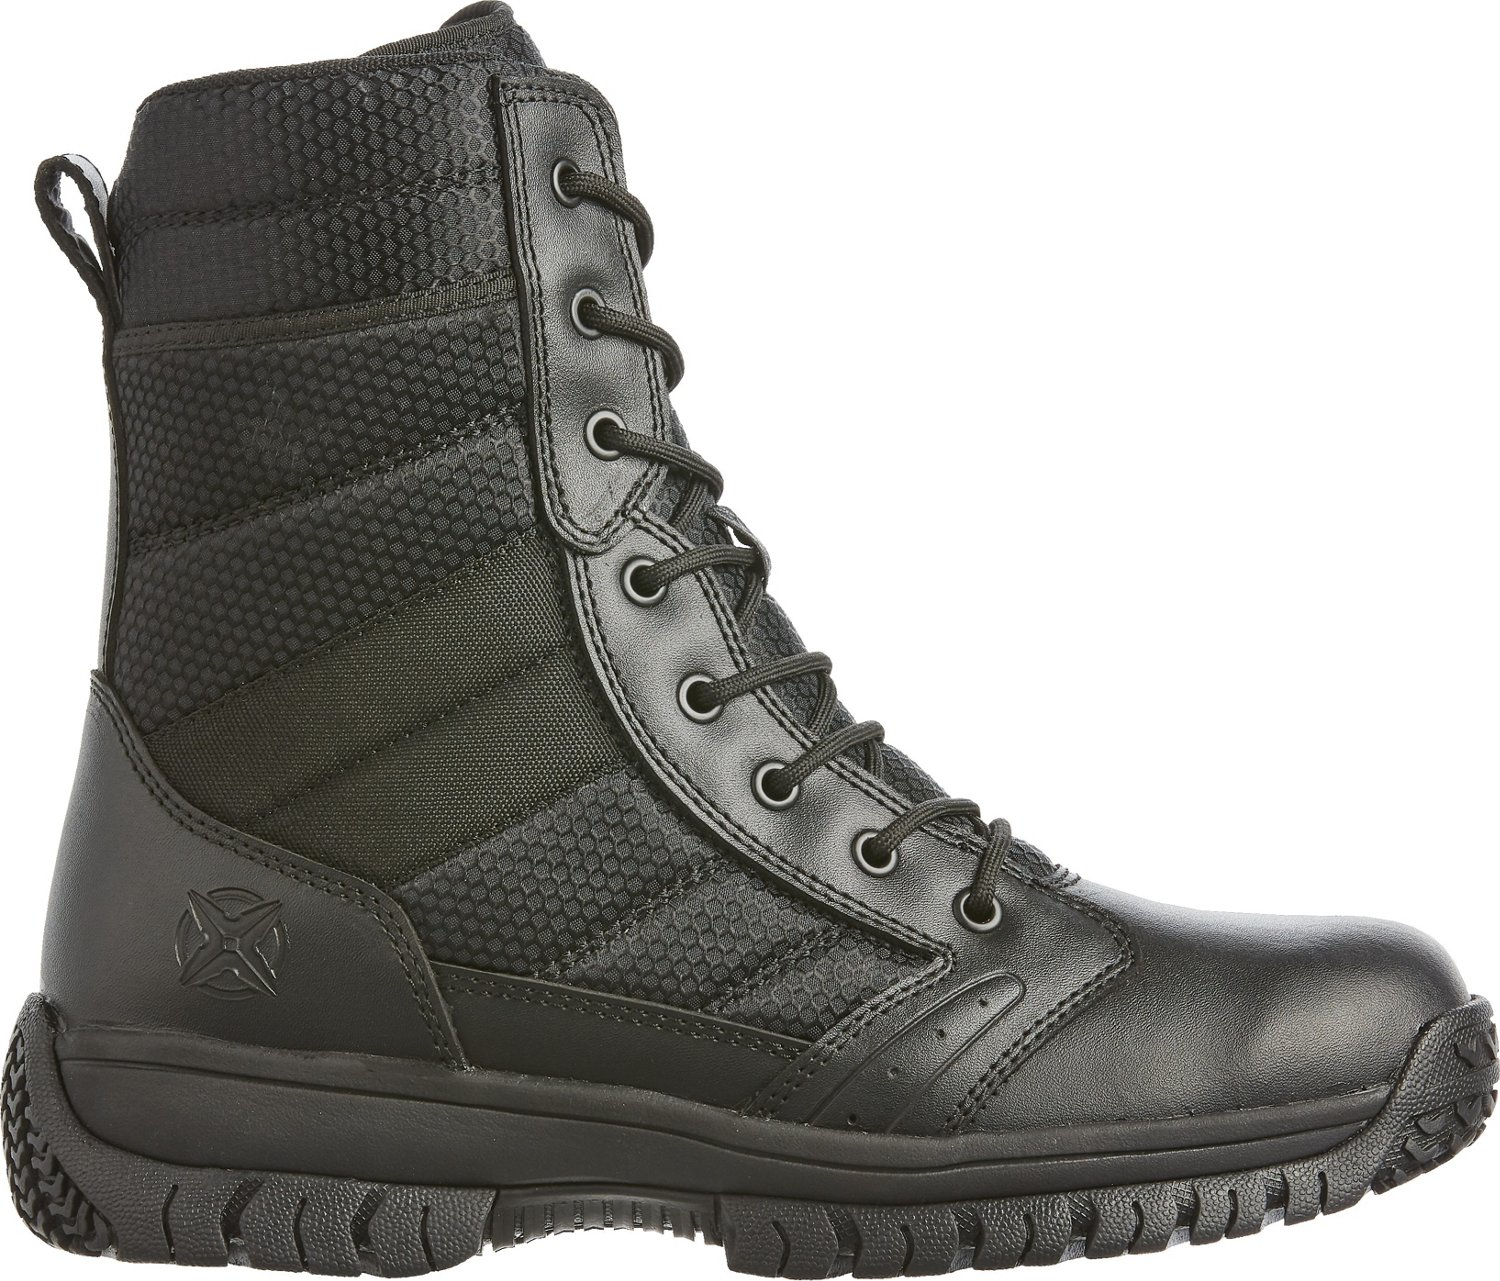 2ddfc2ee1 Display product reviews for Tactical Performance Men's Hawk 8 in Tactical  Boots